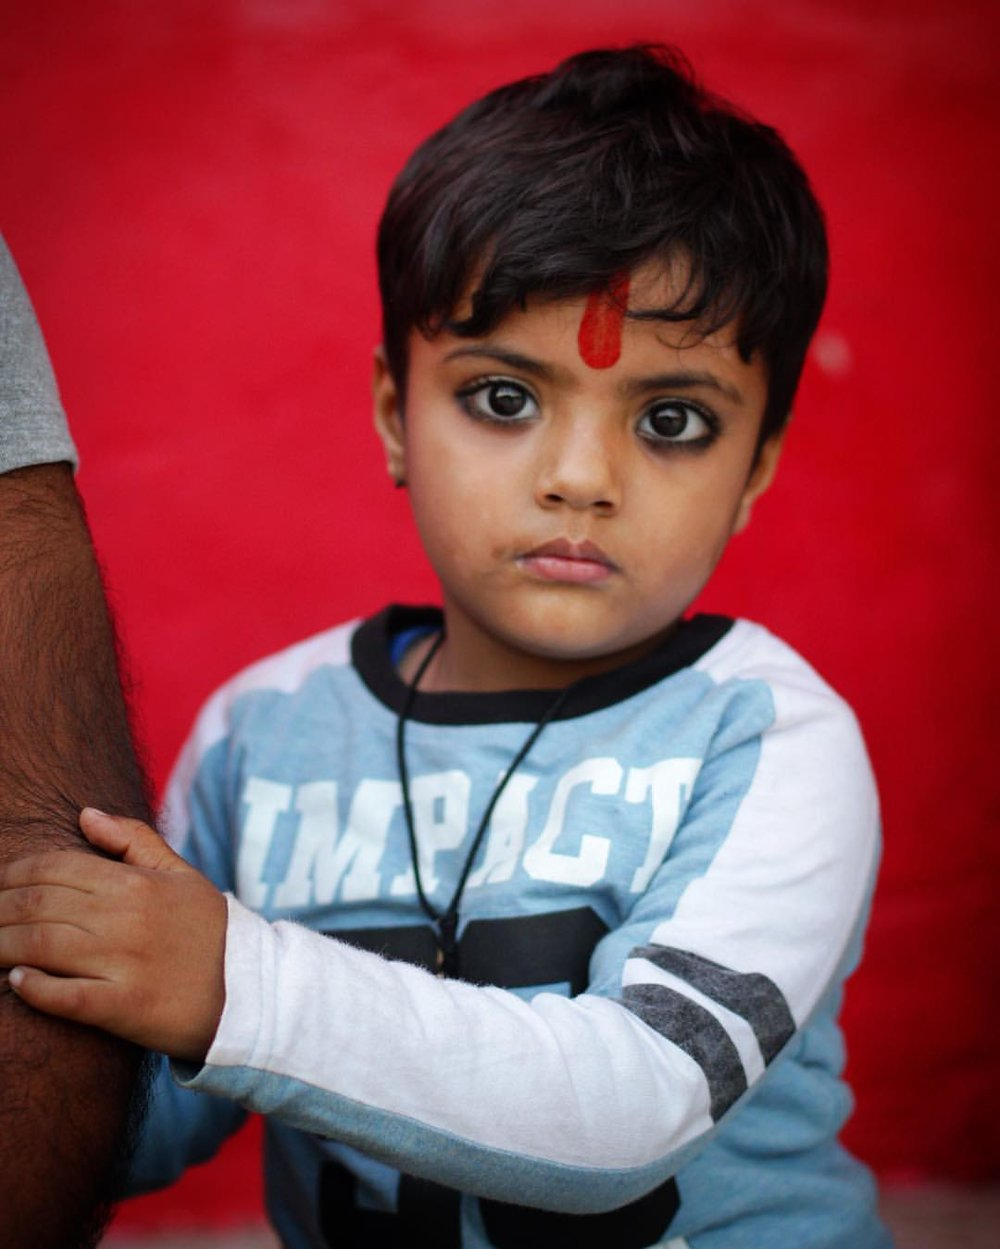 My camera adopted this kid's face. — in  Pushkar .